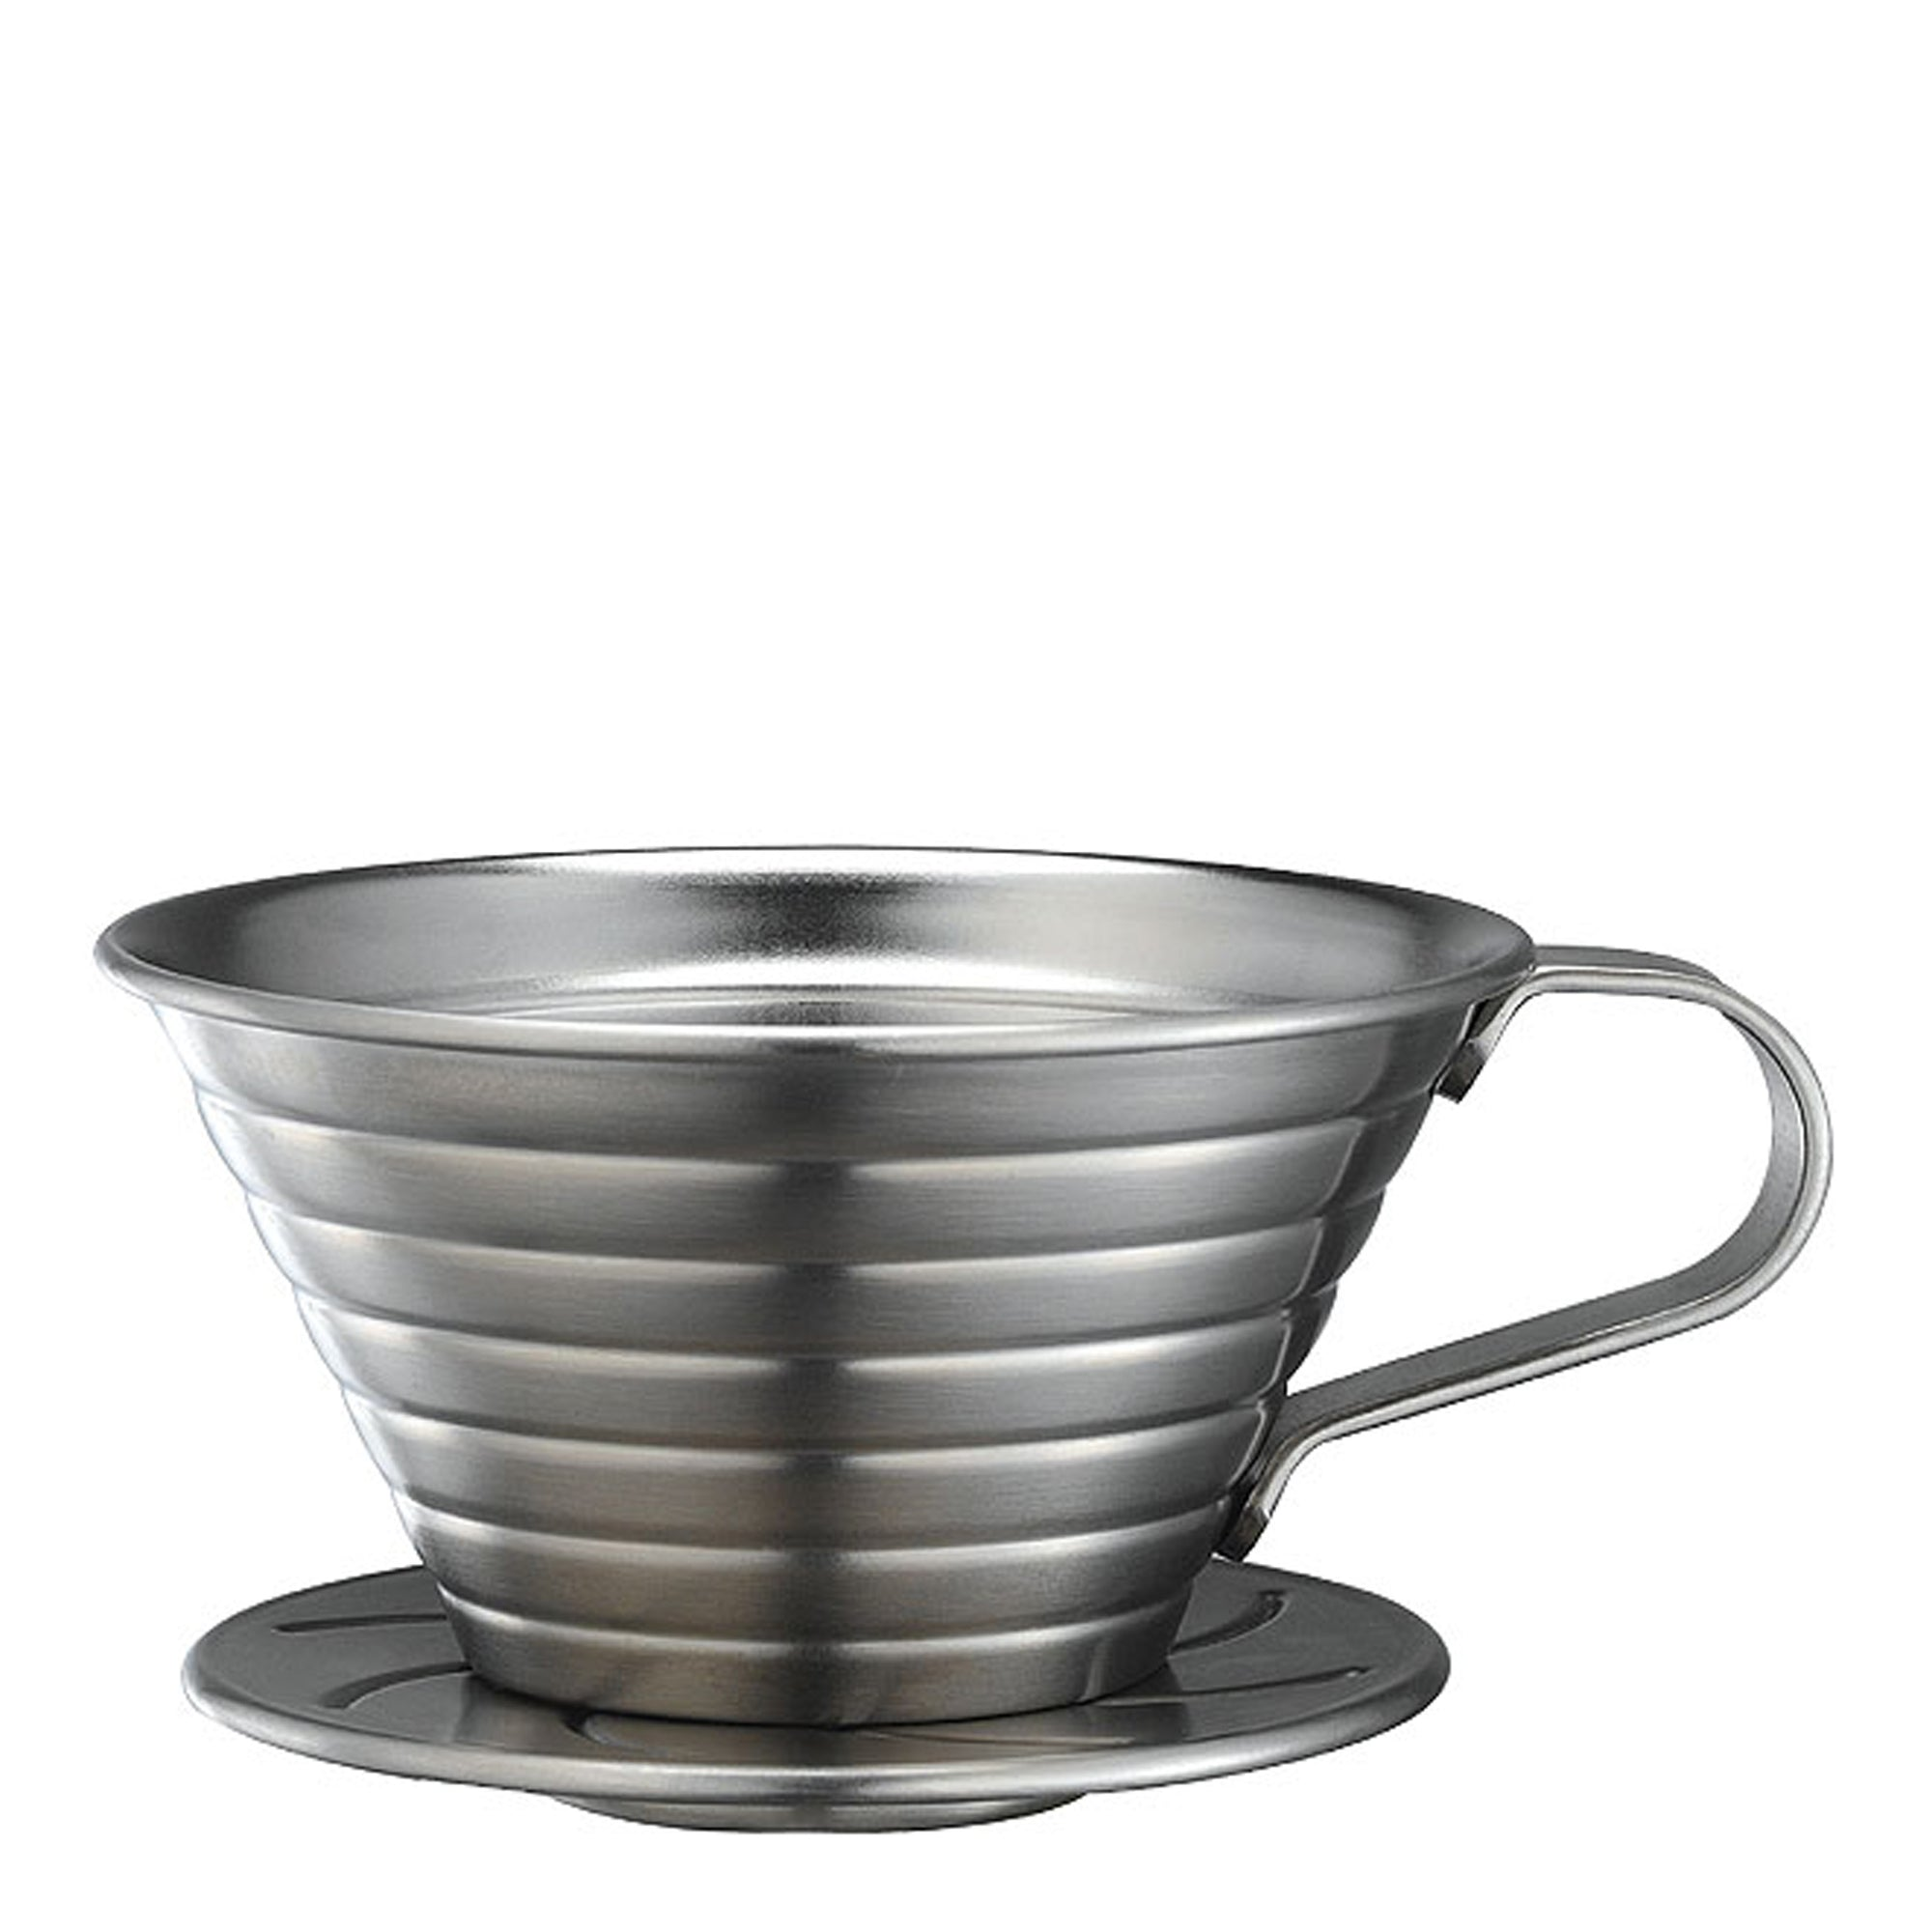 Tiamo K02 Stainless steel filter - Espresso Gear